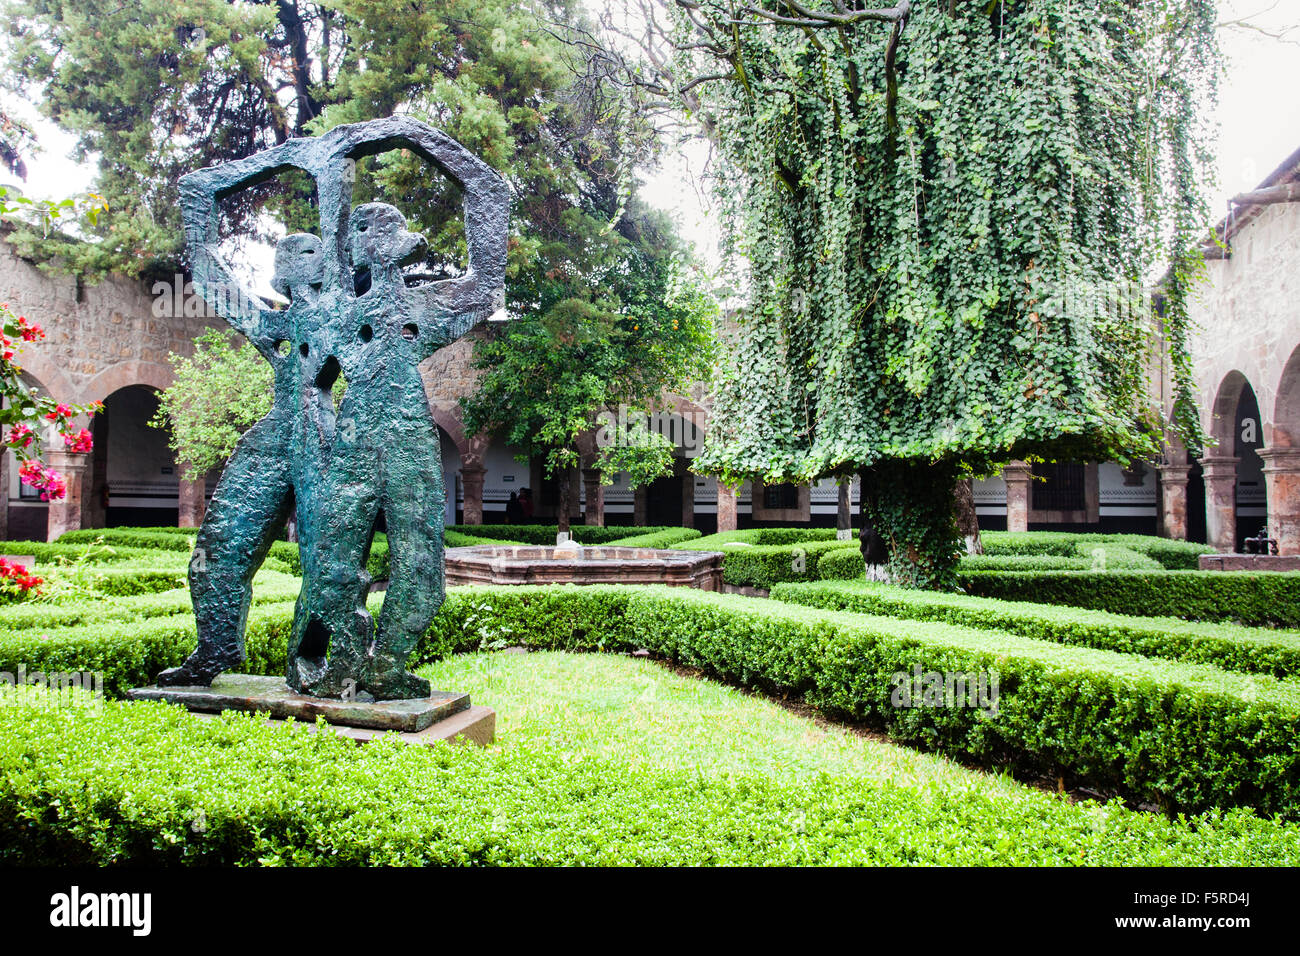 Interior courtyard of the Rosas Music Conservatory with a sculpture by Alfredo Zalce in Morelia, Michoacan, Mexico. - Stock Image